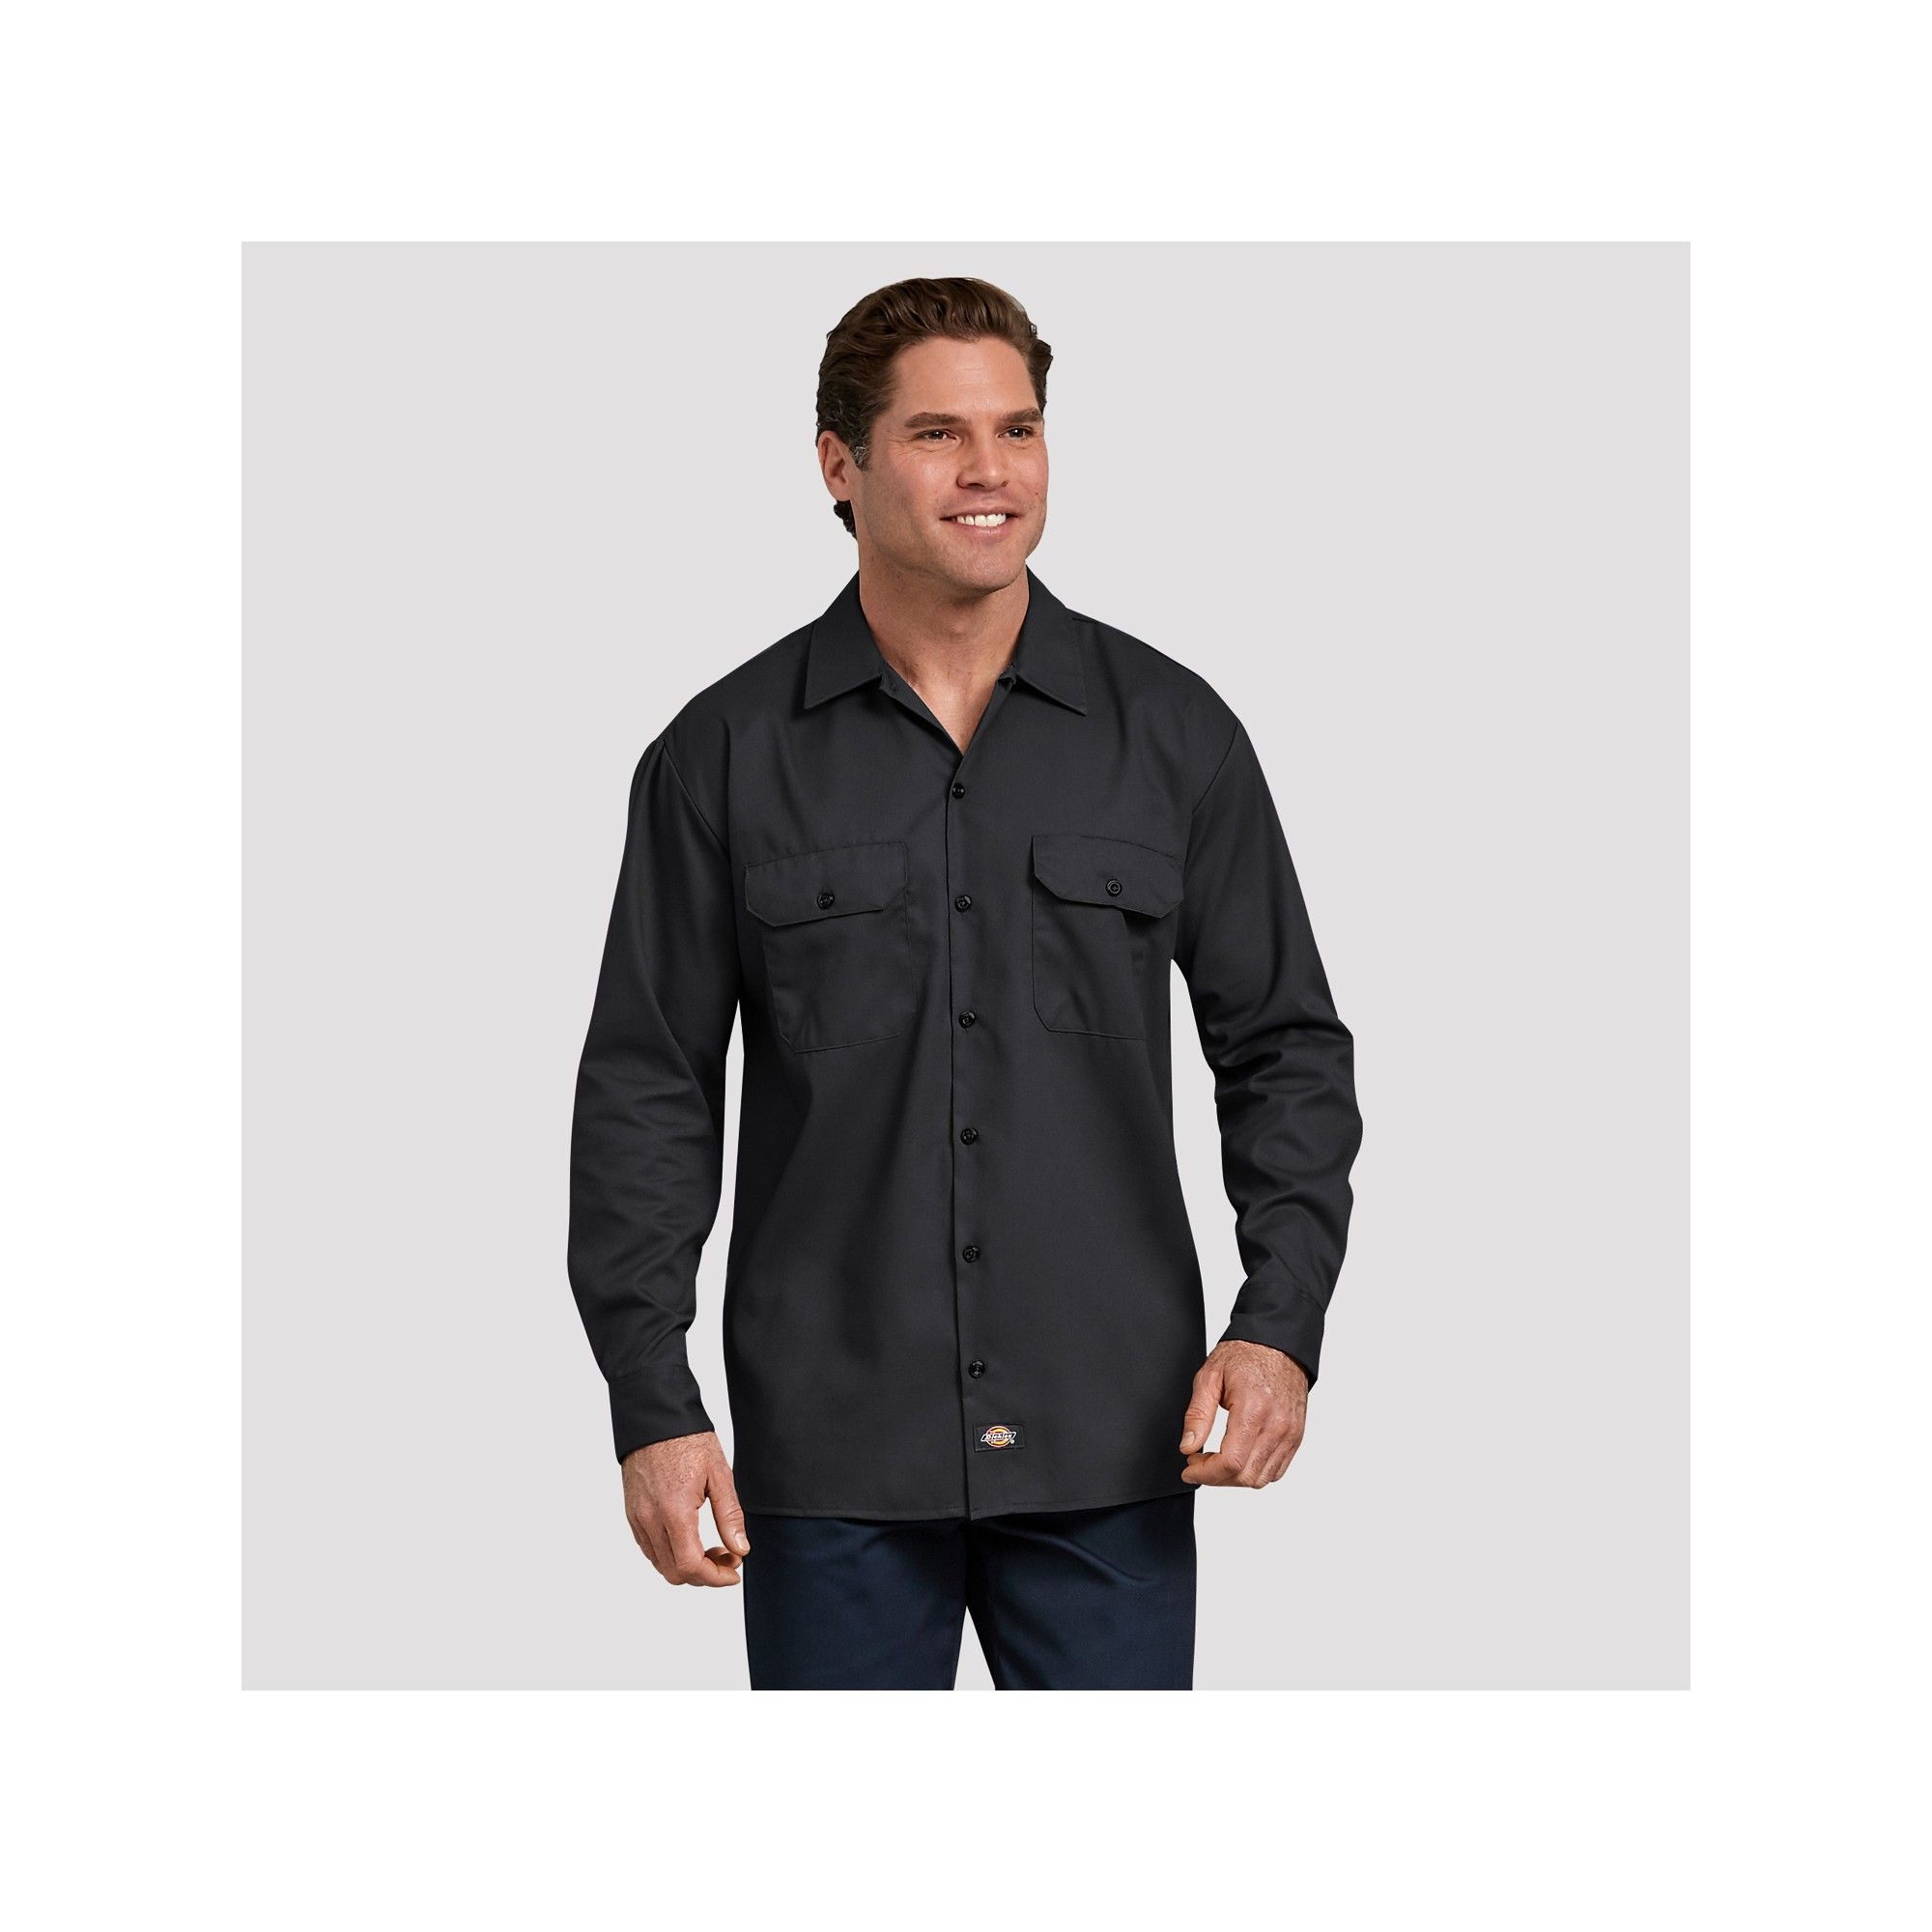 4785f2ca3d Dickies Men s Big   Tall Relaxed Fit Long Sleeve Button-Down Shirts - Black  3XL